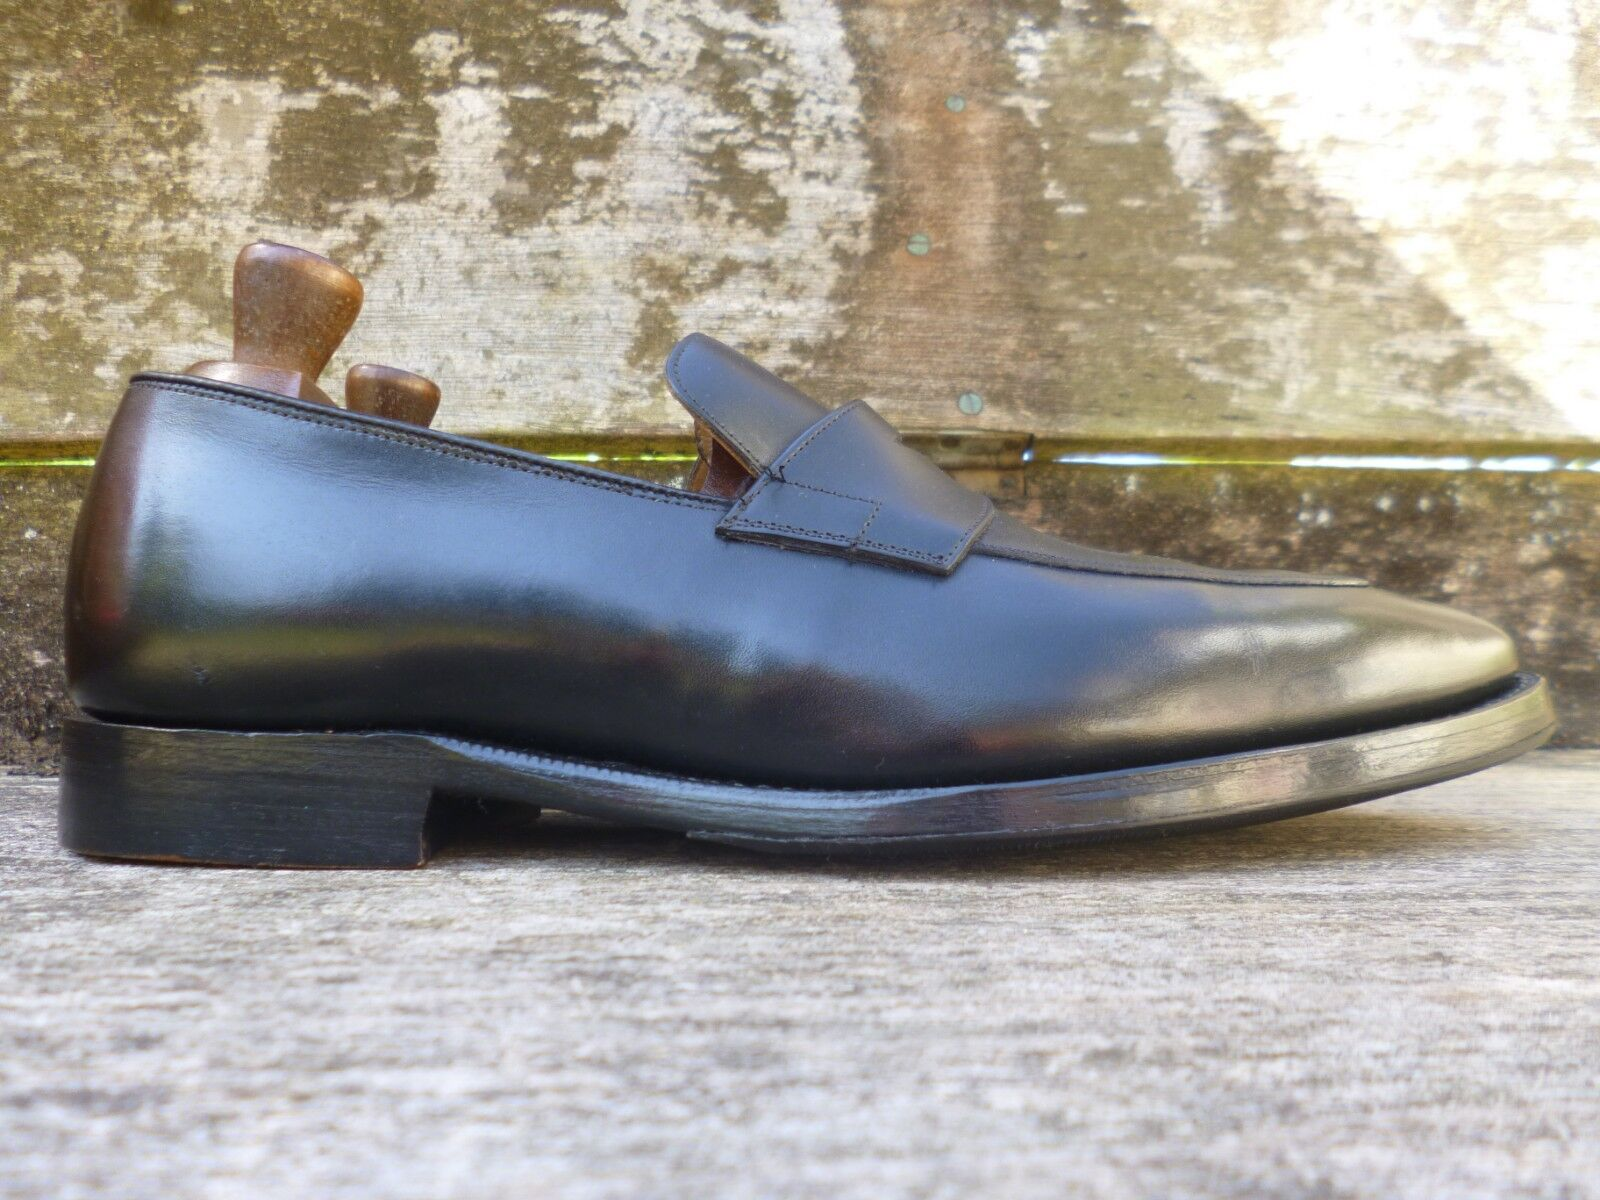 CHURCH LOAFERS – schwarz - UK UK UK 6.5 – SWANLEY - EXCELLENT CONDITION e6d34c